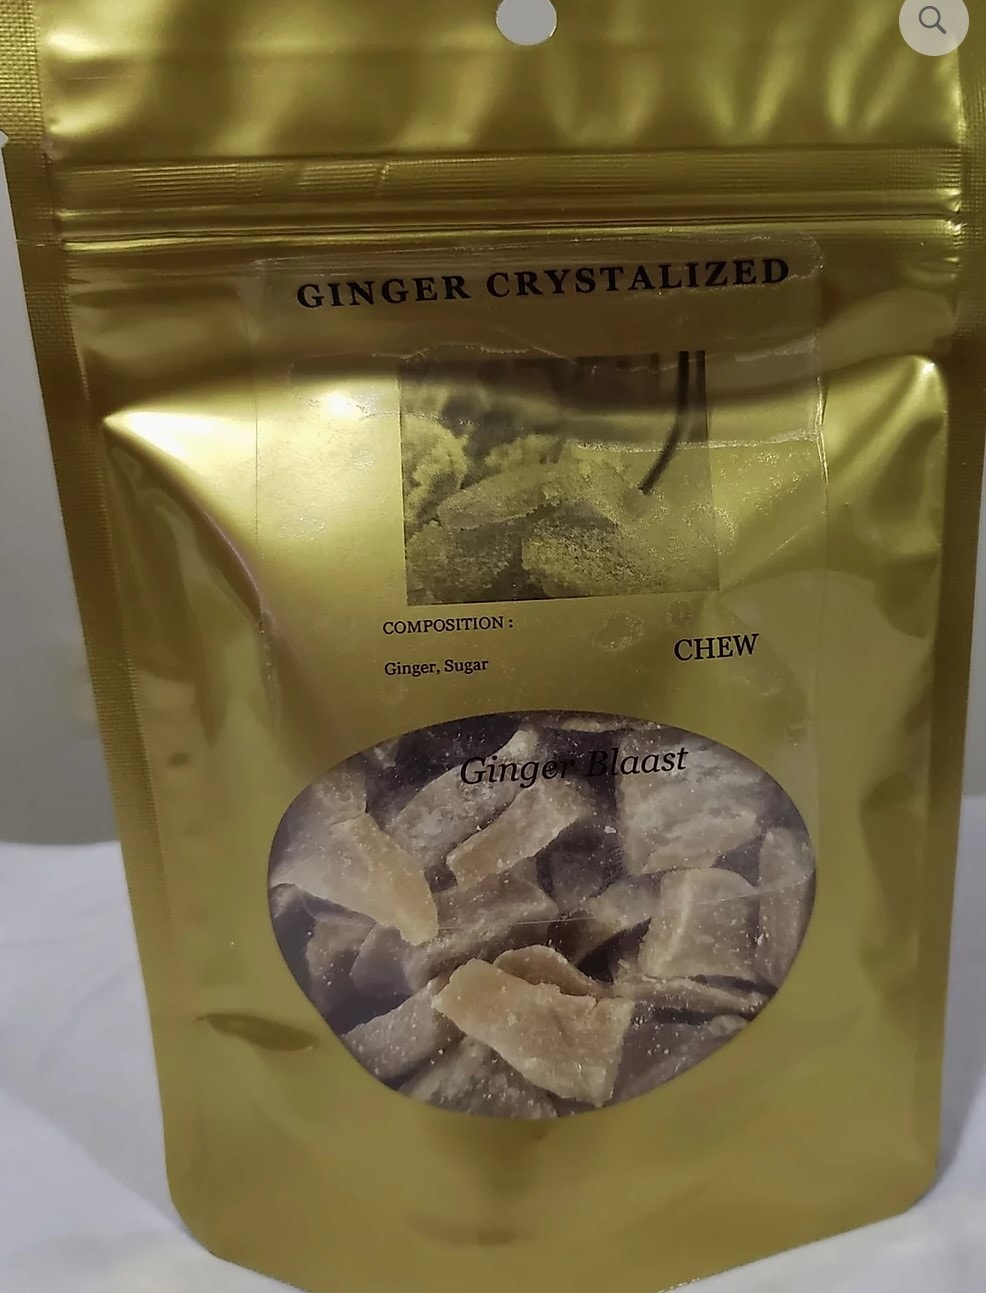 Ginger Blaast ginger-gift-1-min Where to buy organic ginger chew Ginger Products Help